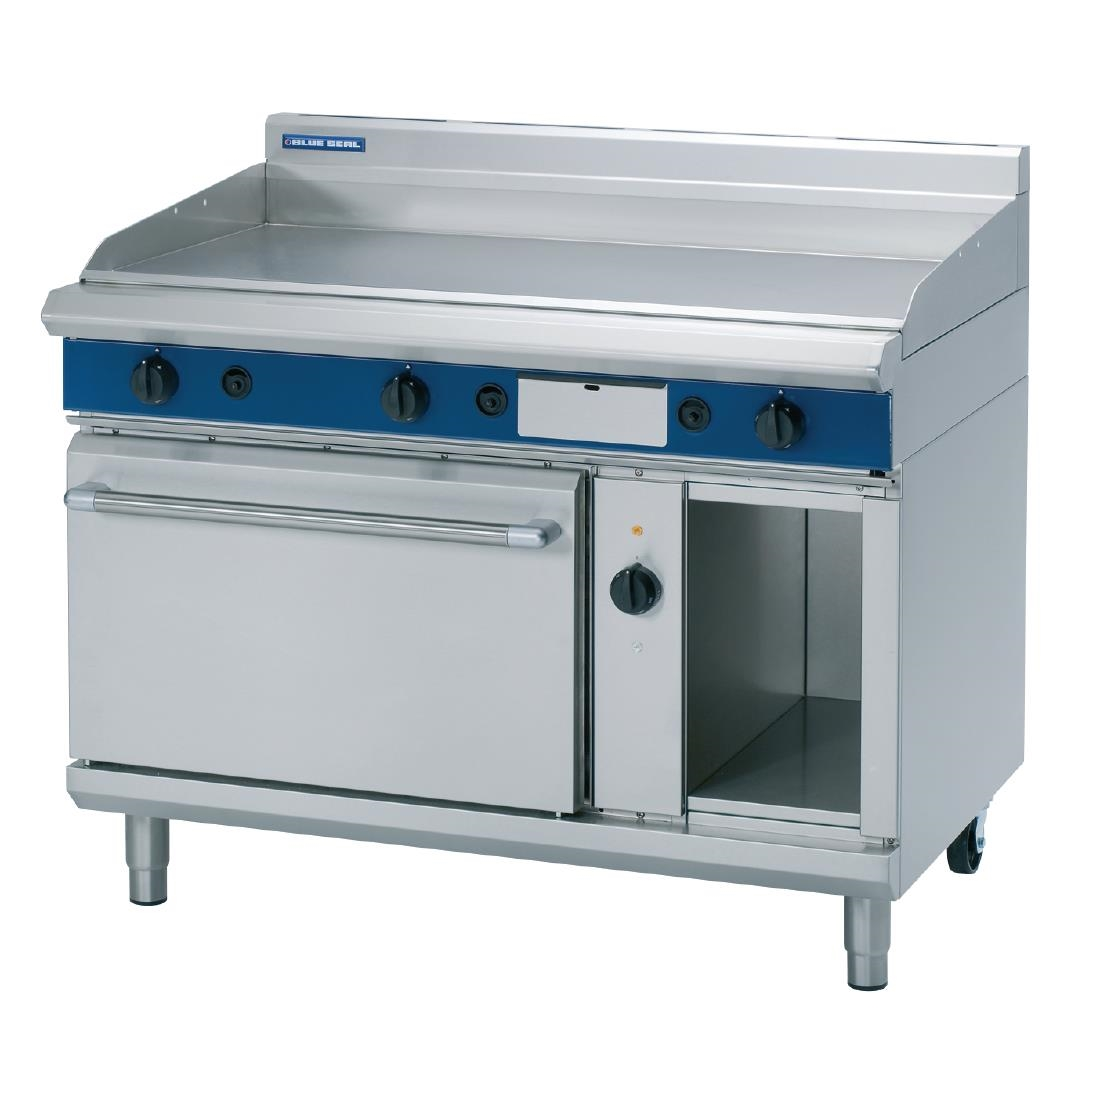 Image of Blue Seal Evolution LPG Chrome Griddle Electric Convection Oven 1200mm GPE58/L